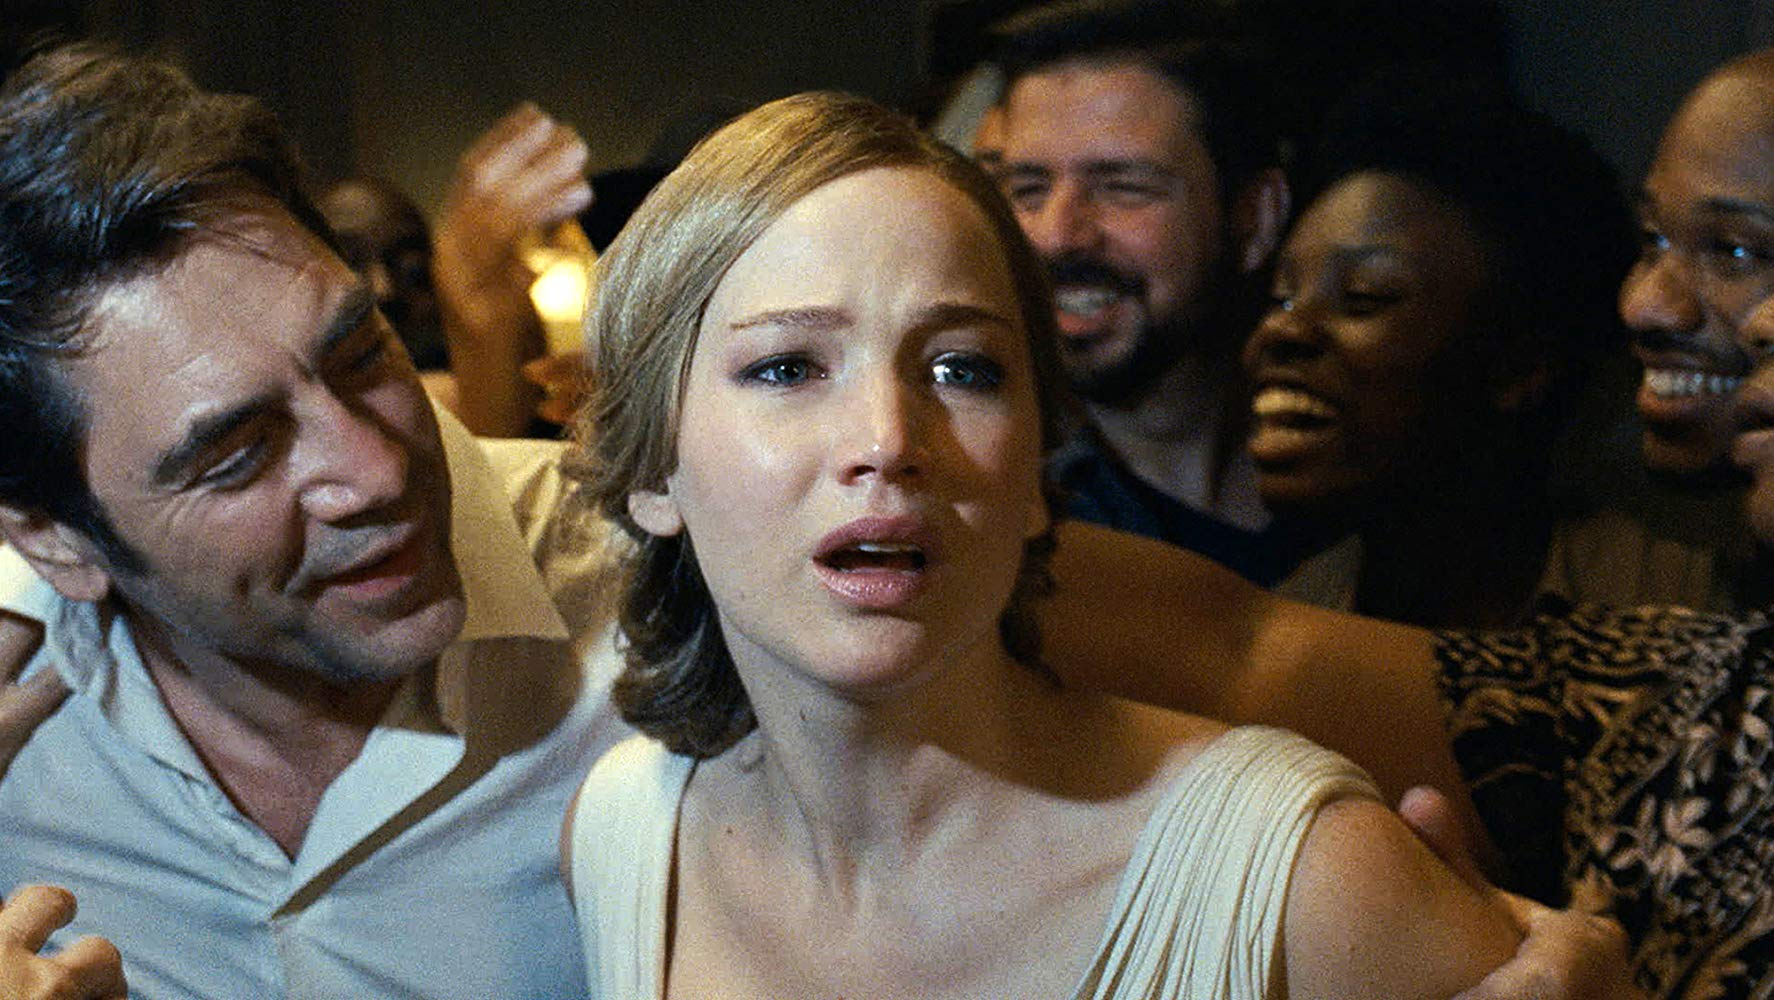 Mother (Jennifer Lawrence), increasingly distressed as crowds overrun her house in Mother! (2017)